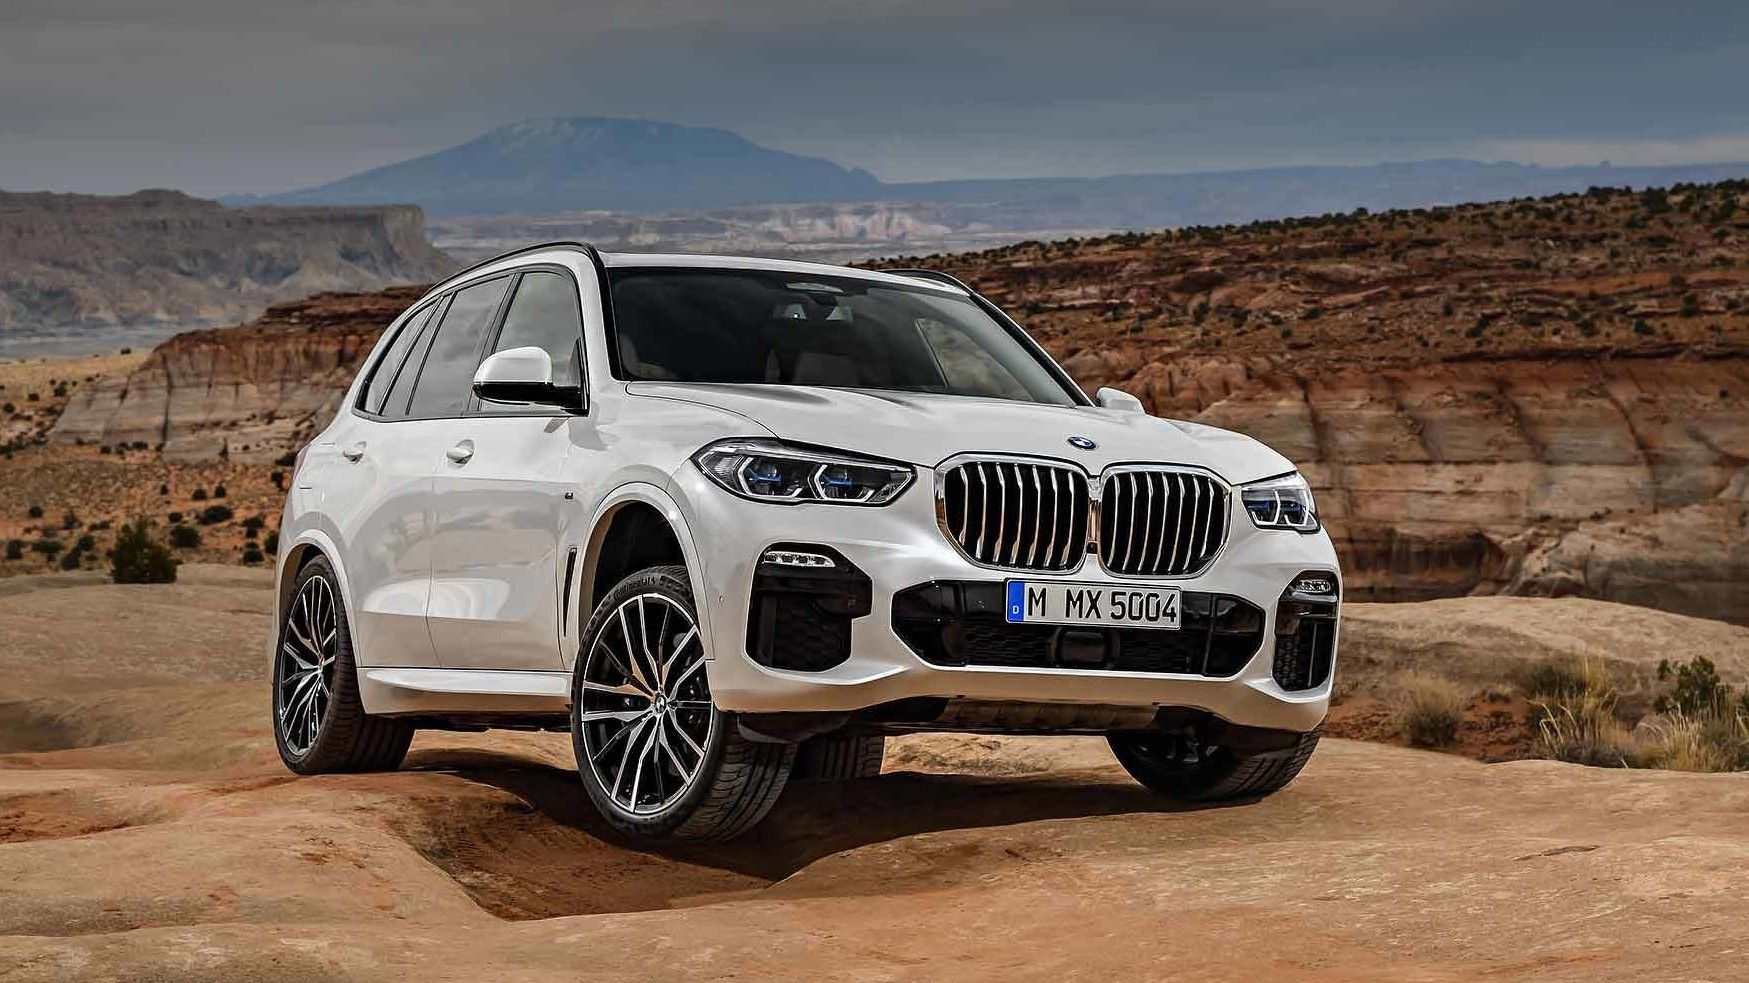 2020 bmw x5 m50i on dunes in white color